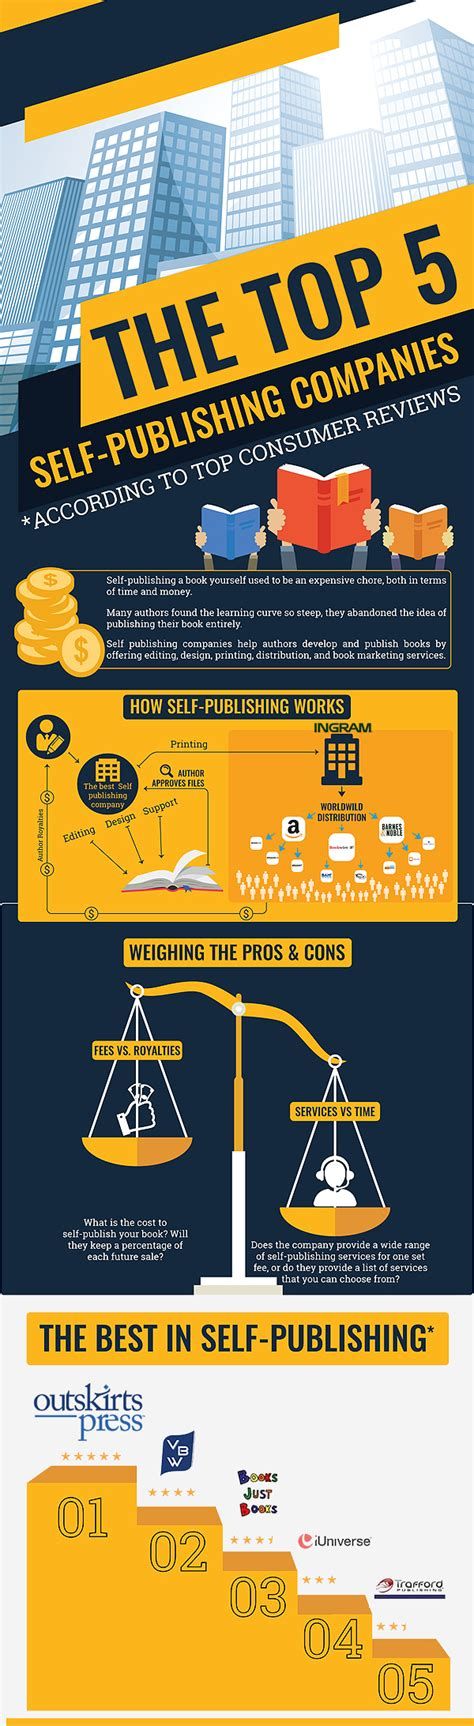 Best Self Publishing Company The Top 5 Self Publishing Companies Infographic Self